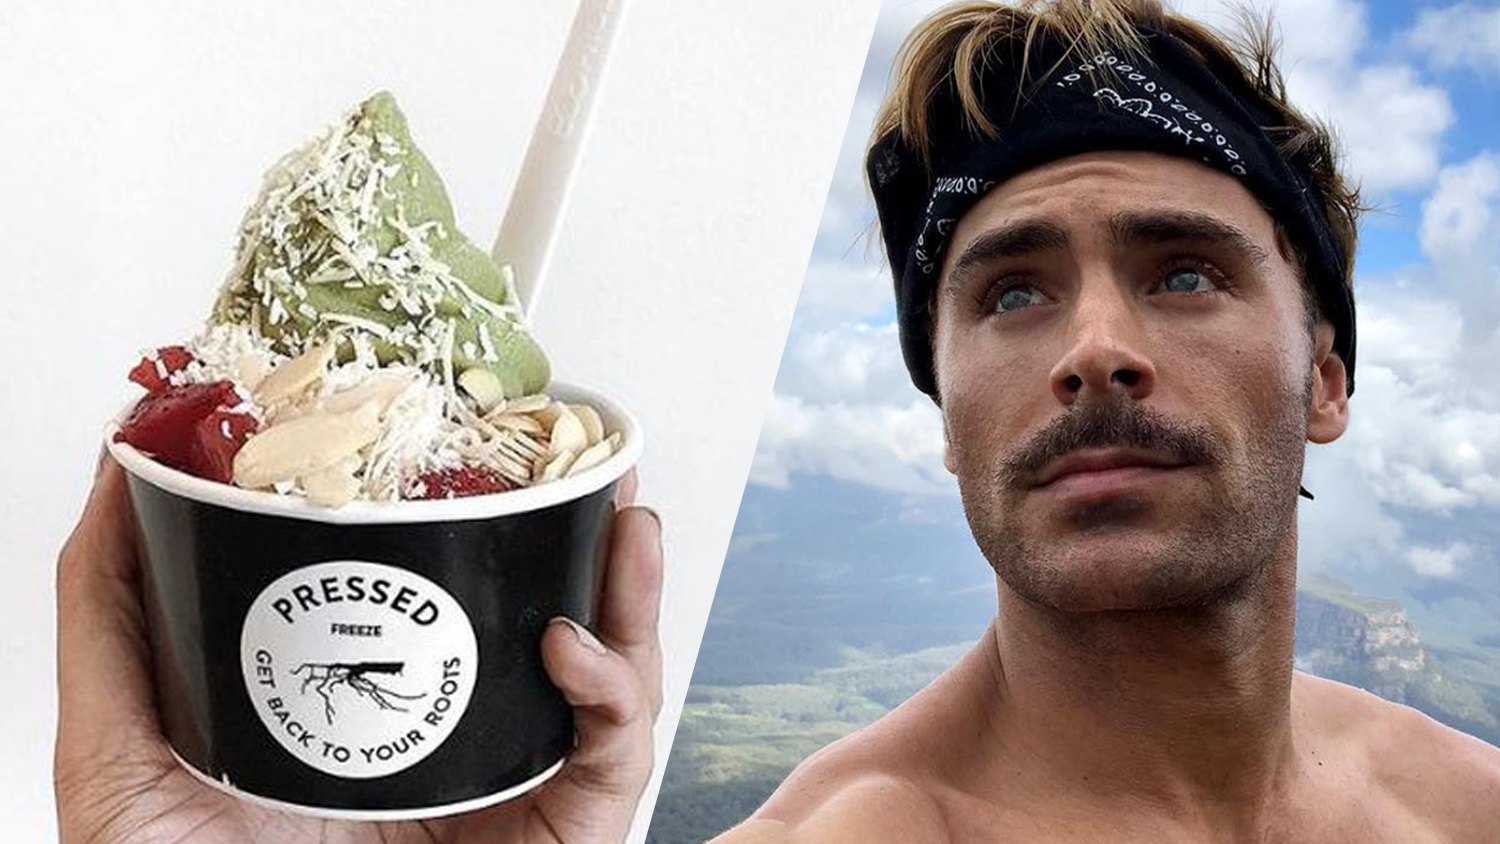 This Is the Vegan Ice Cream Zac Efron Had to Have After Surgery